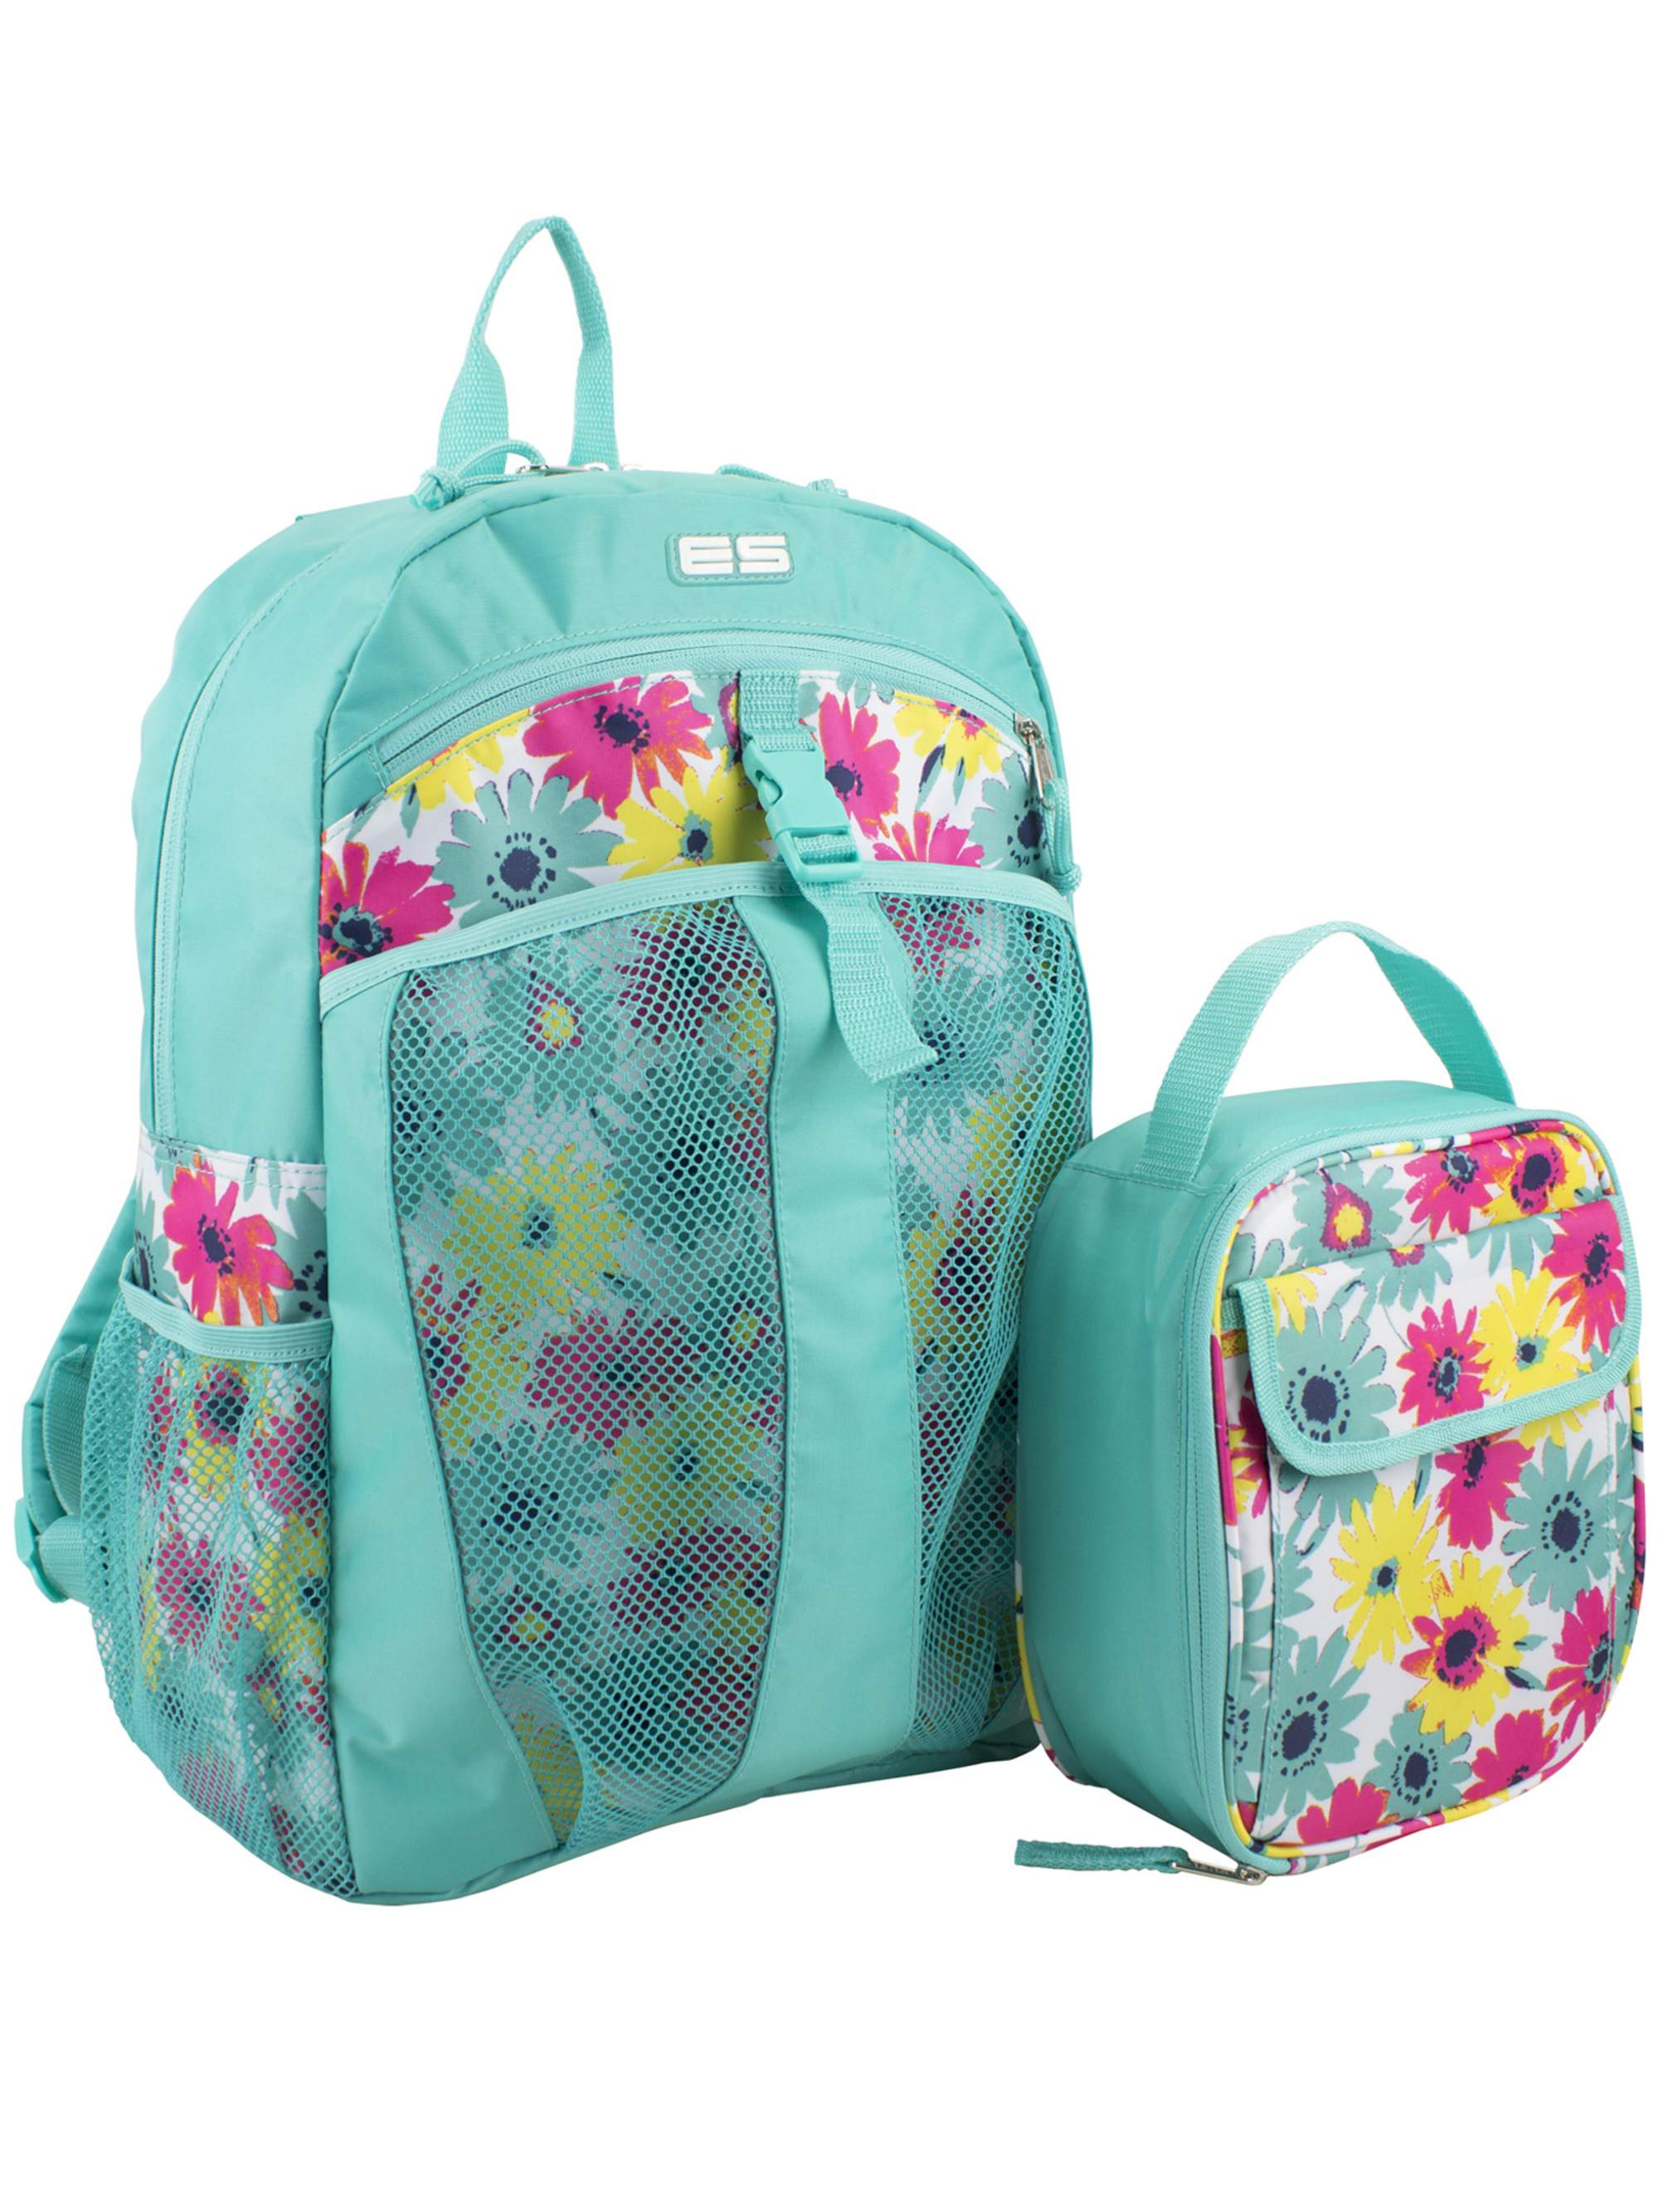 Eastsport Backpack with Bonus Matching Lunch Bag by Bijoux International